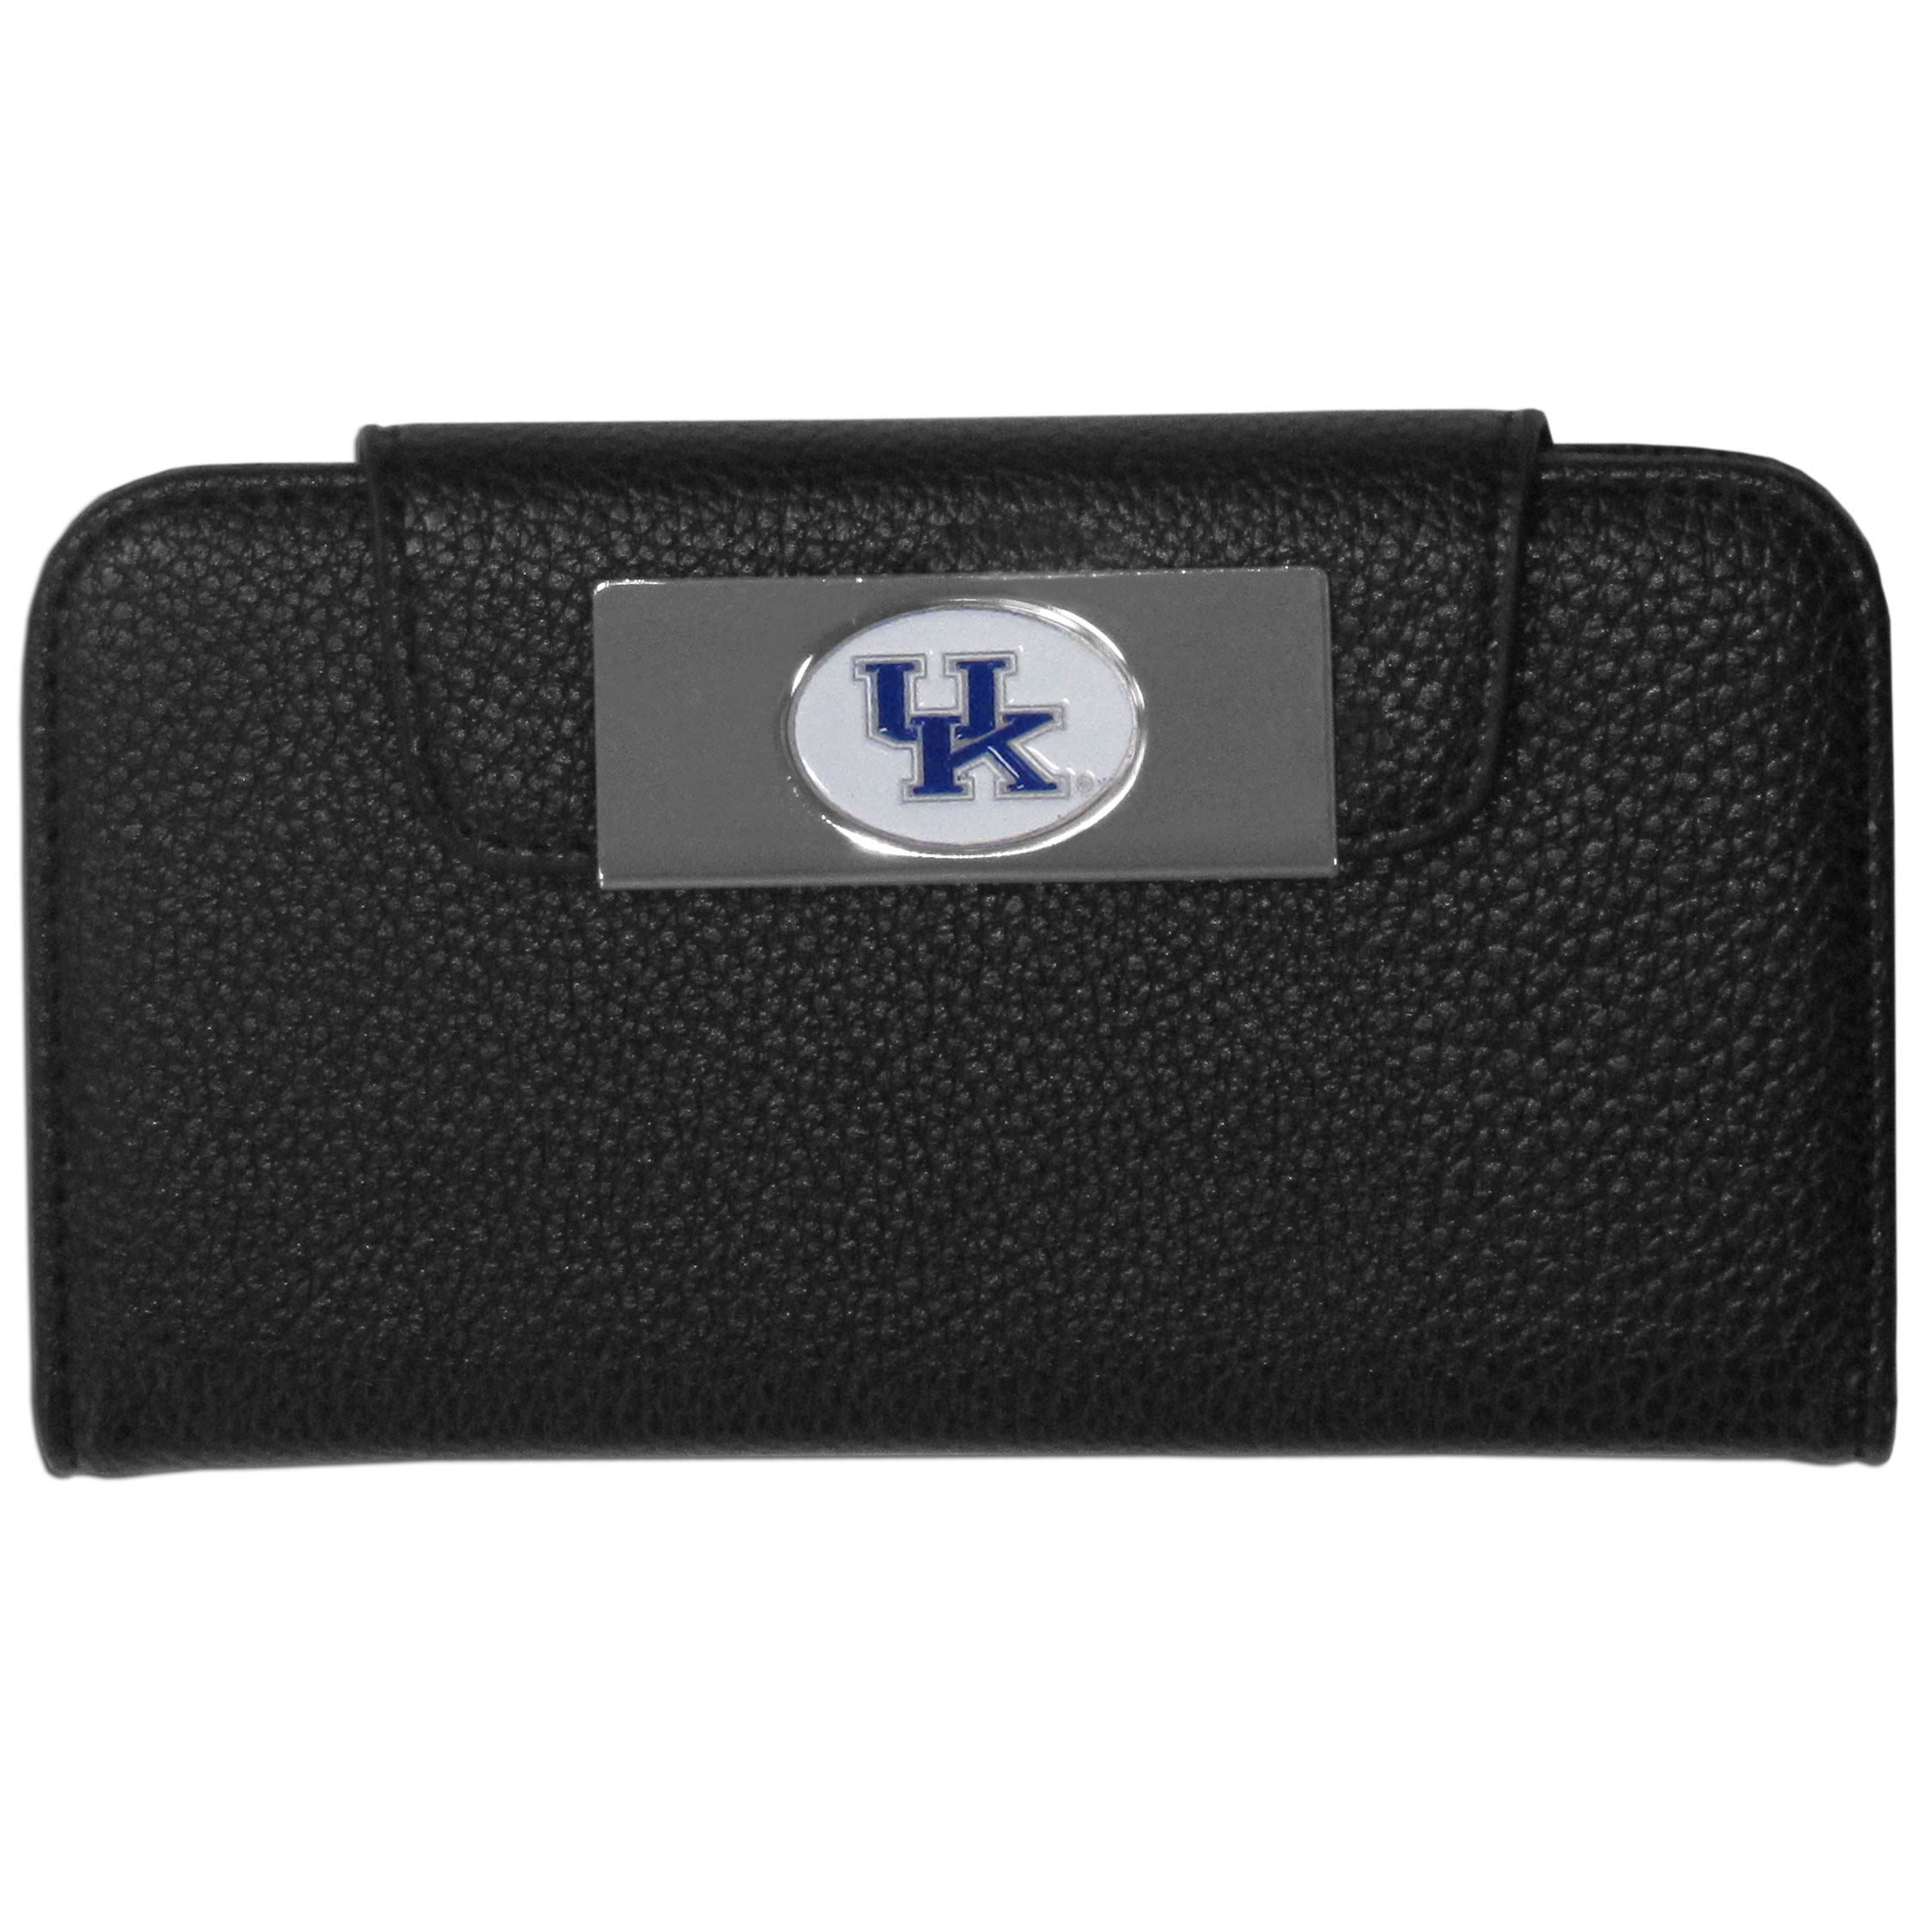 Kentucky Wildcats iPhone 5/5S Wallet Case - This new & wildly popular case is ideal for those who like to travel light! The stylish case has an inner hard shell that securely holds your phone while allowing complete access to the phone's functionality. The flip cover has slots for credit cards, business cards and identification. The magnetic flip cover has a metal Kentucky Wildcats emblem on a high polish chrome backing. Fits the iPhone 5/5S